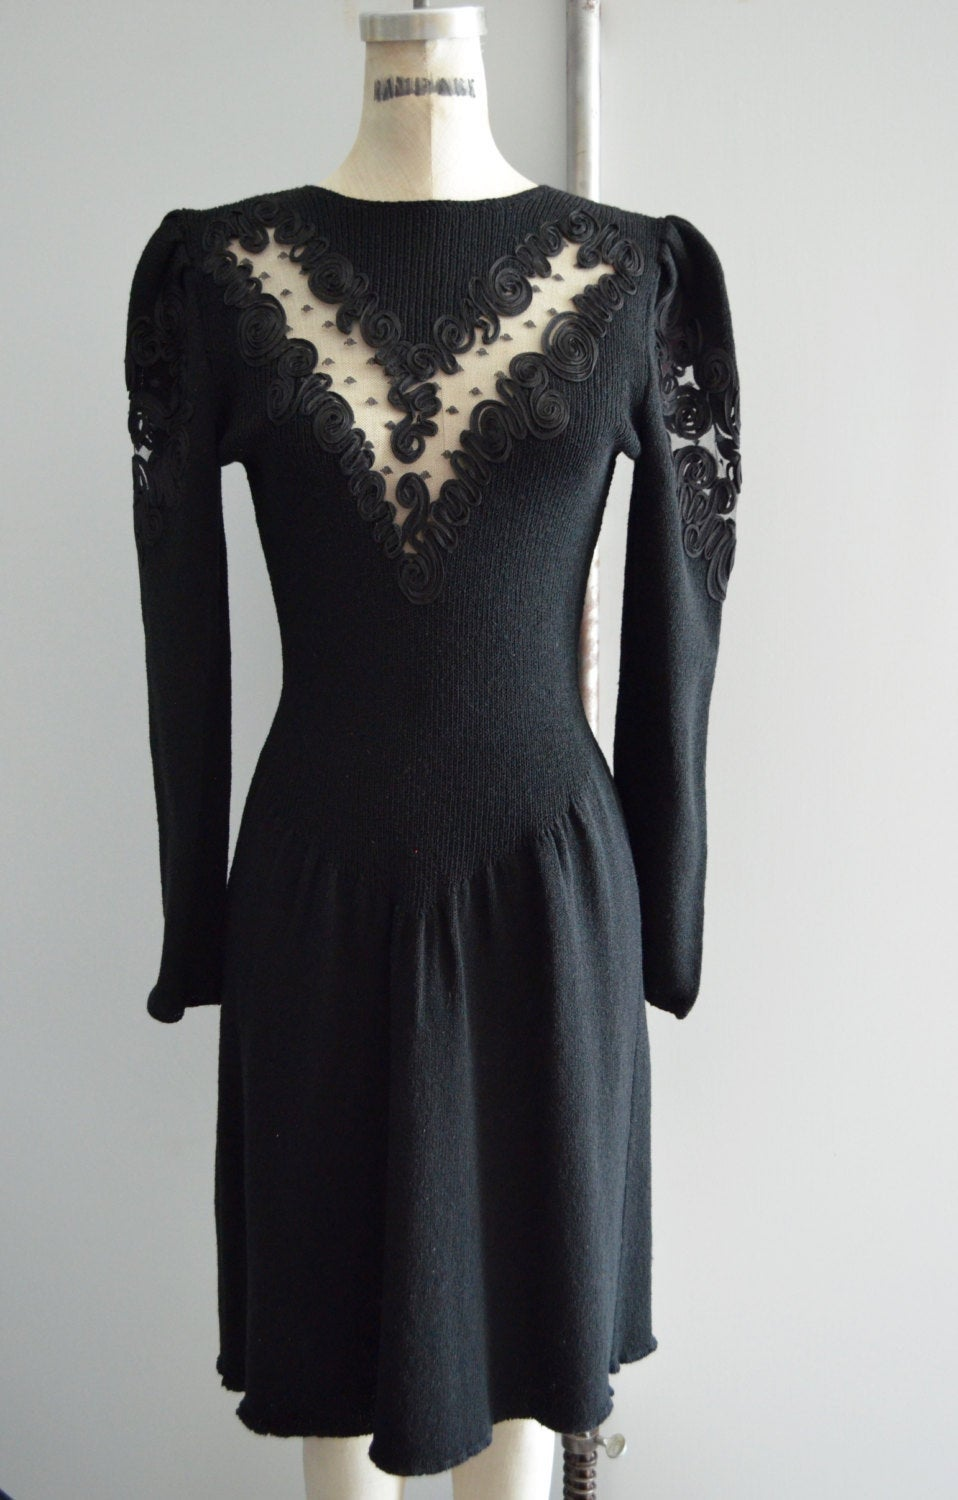 Pat Sandler Wellmore Dress For Saks Fifth Avenue Black Santana Knit Bead Puff Sleeve Dynasty